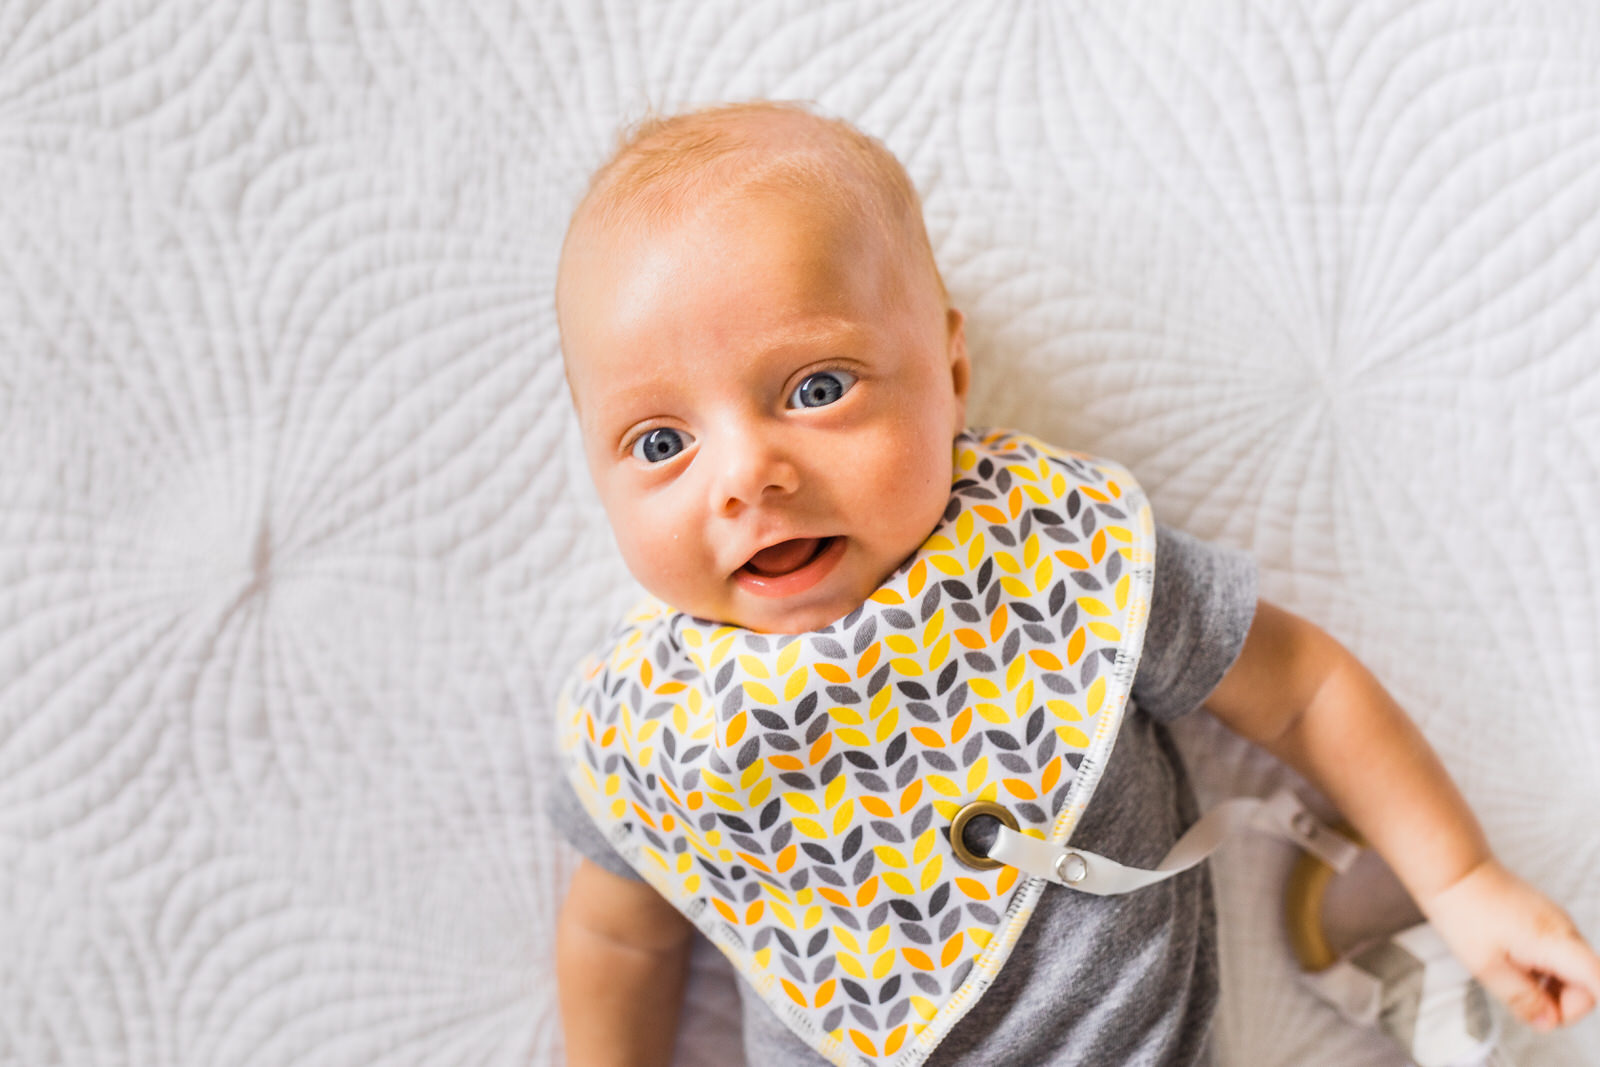 kids-clothes-small-business-baby-newborn-collaboration-7646.jpg